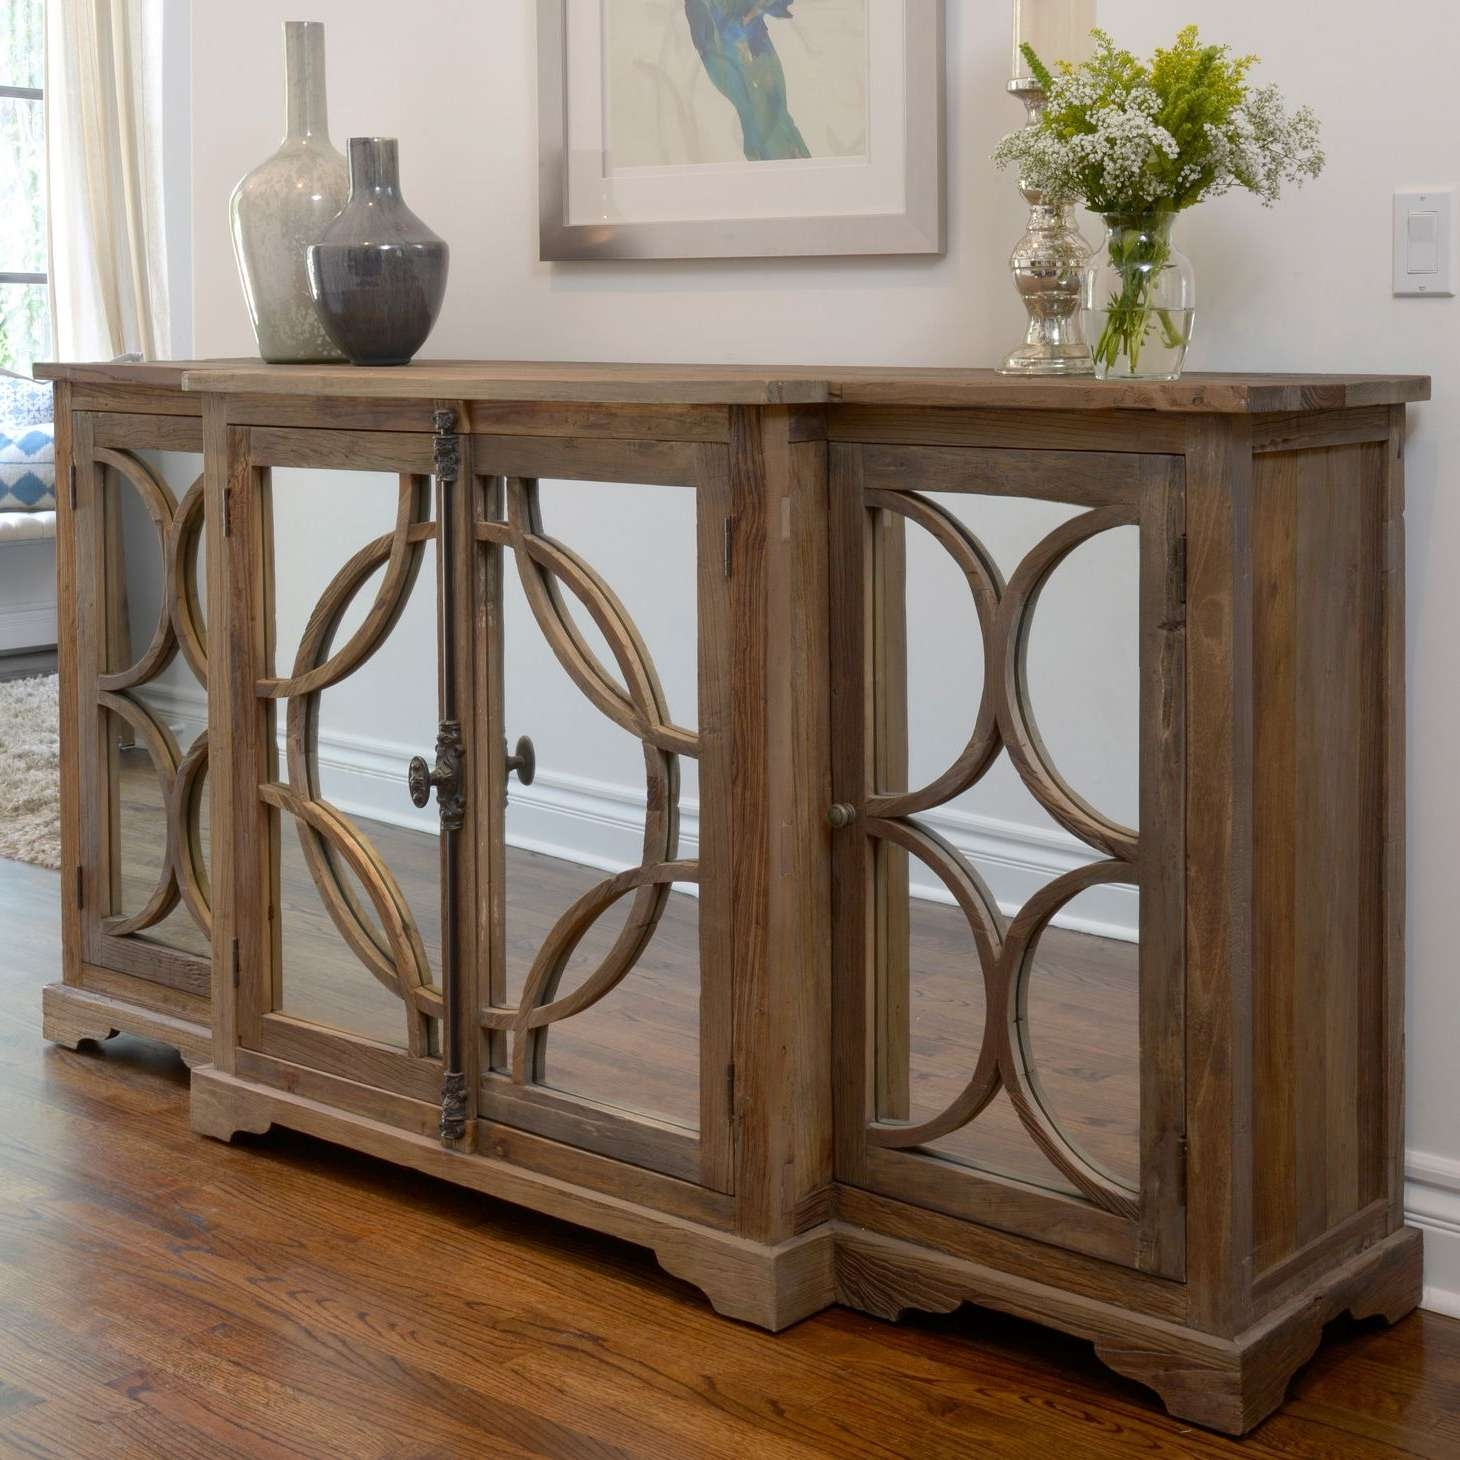 Luxury Mirrored Sideboard Buffet – Bjdgjy Throughout Mirror Sideboards (View 8 of 20)